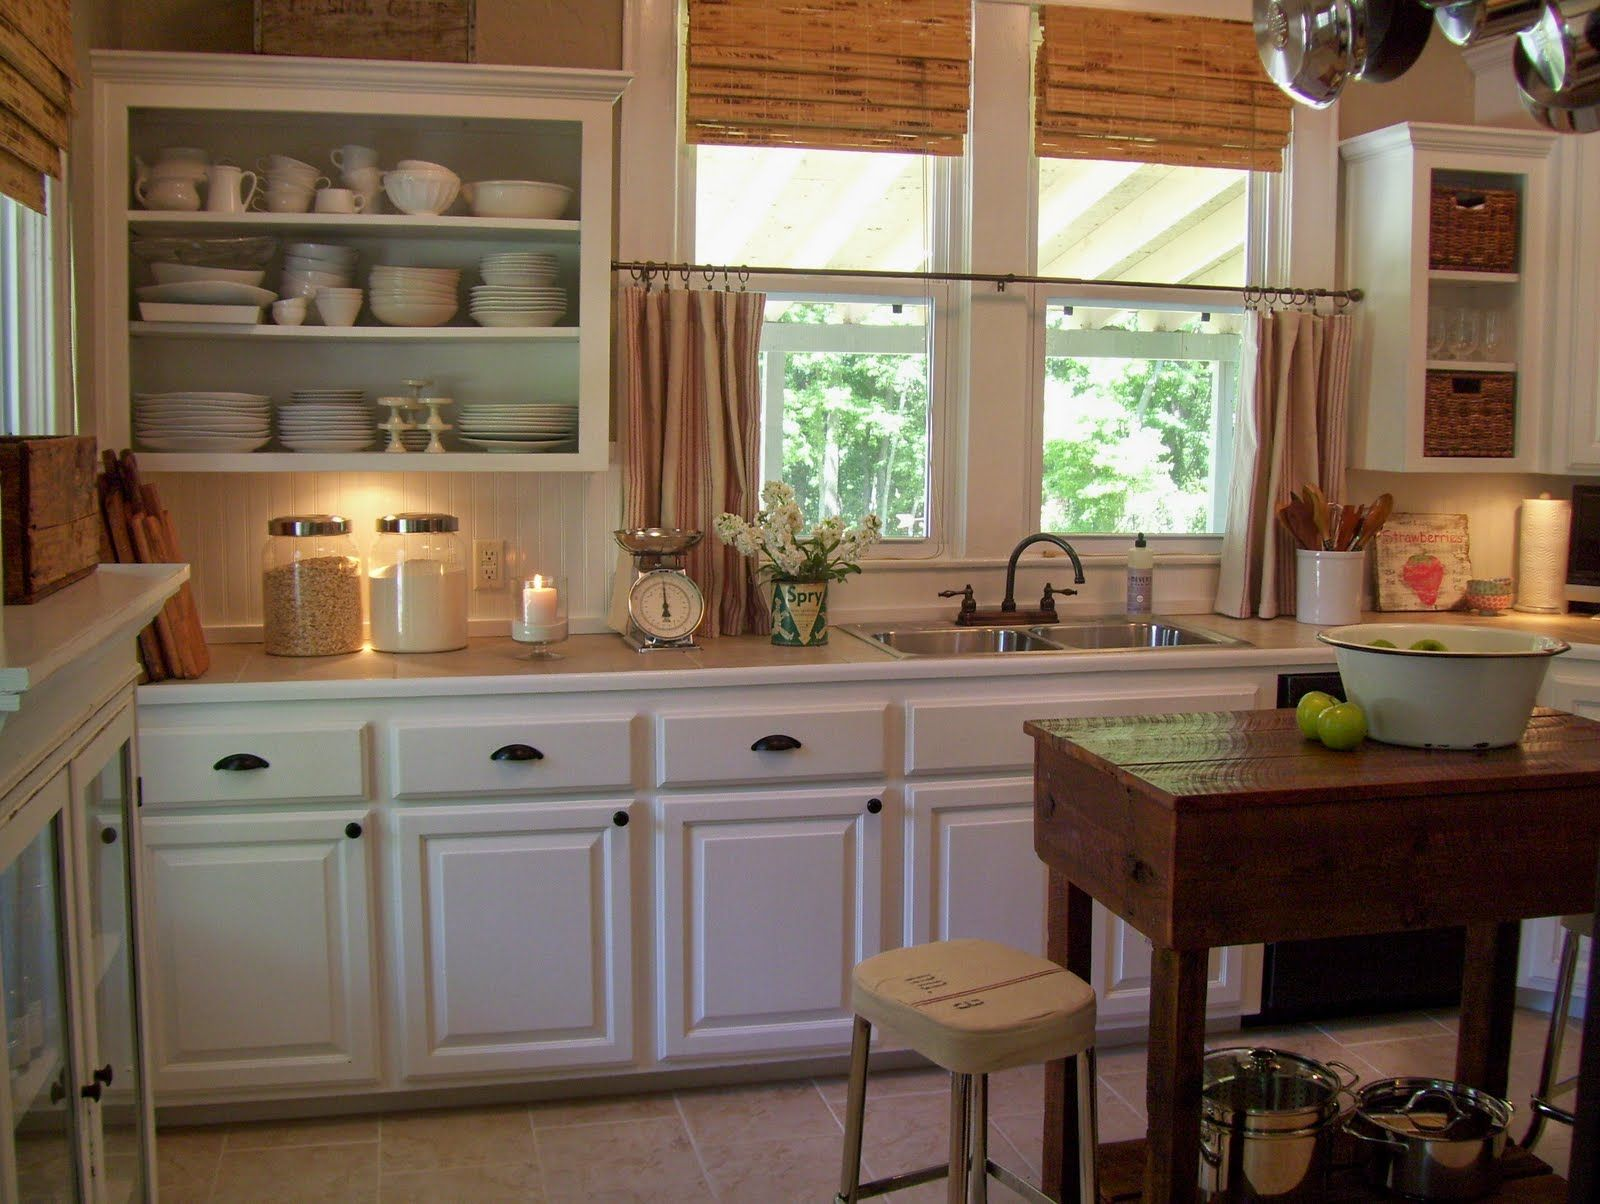 Discover Various Farmhouse Style Kitchen Photo Gallery Showcasing Diffe Design Ideas